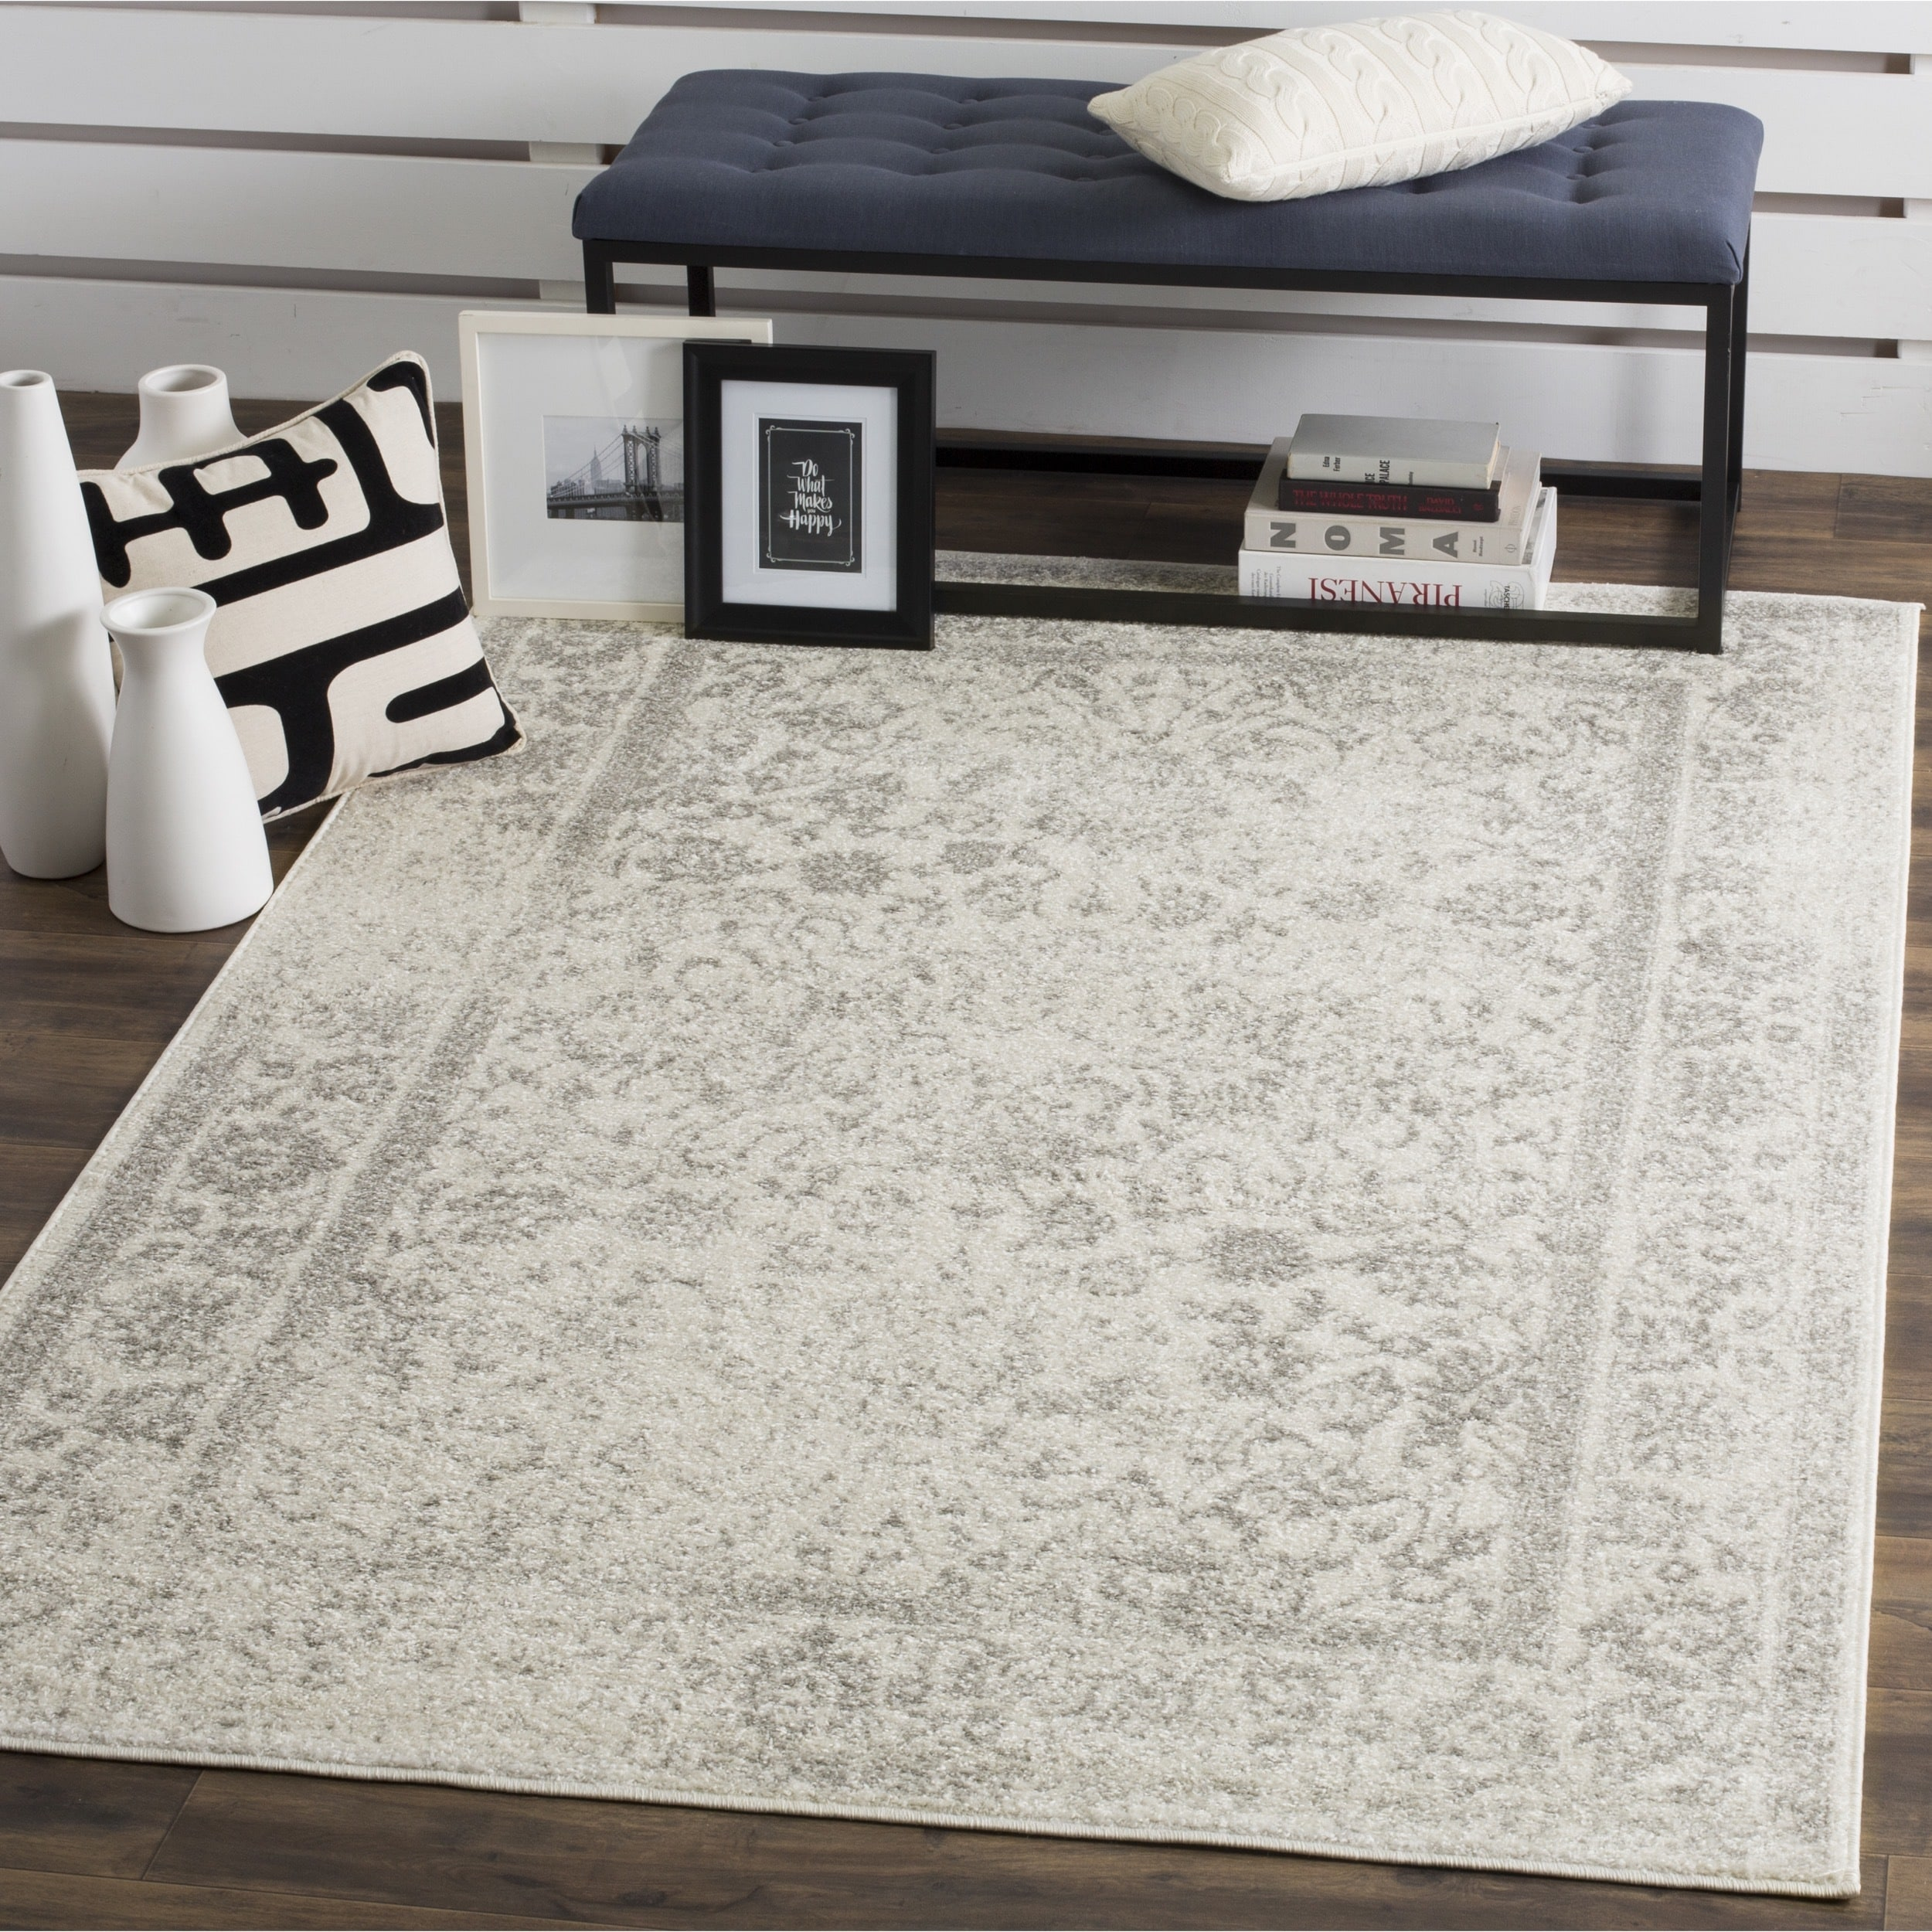 Vintage Accent Area Rug For Living Room